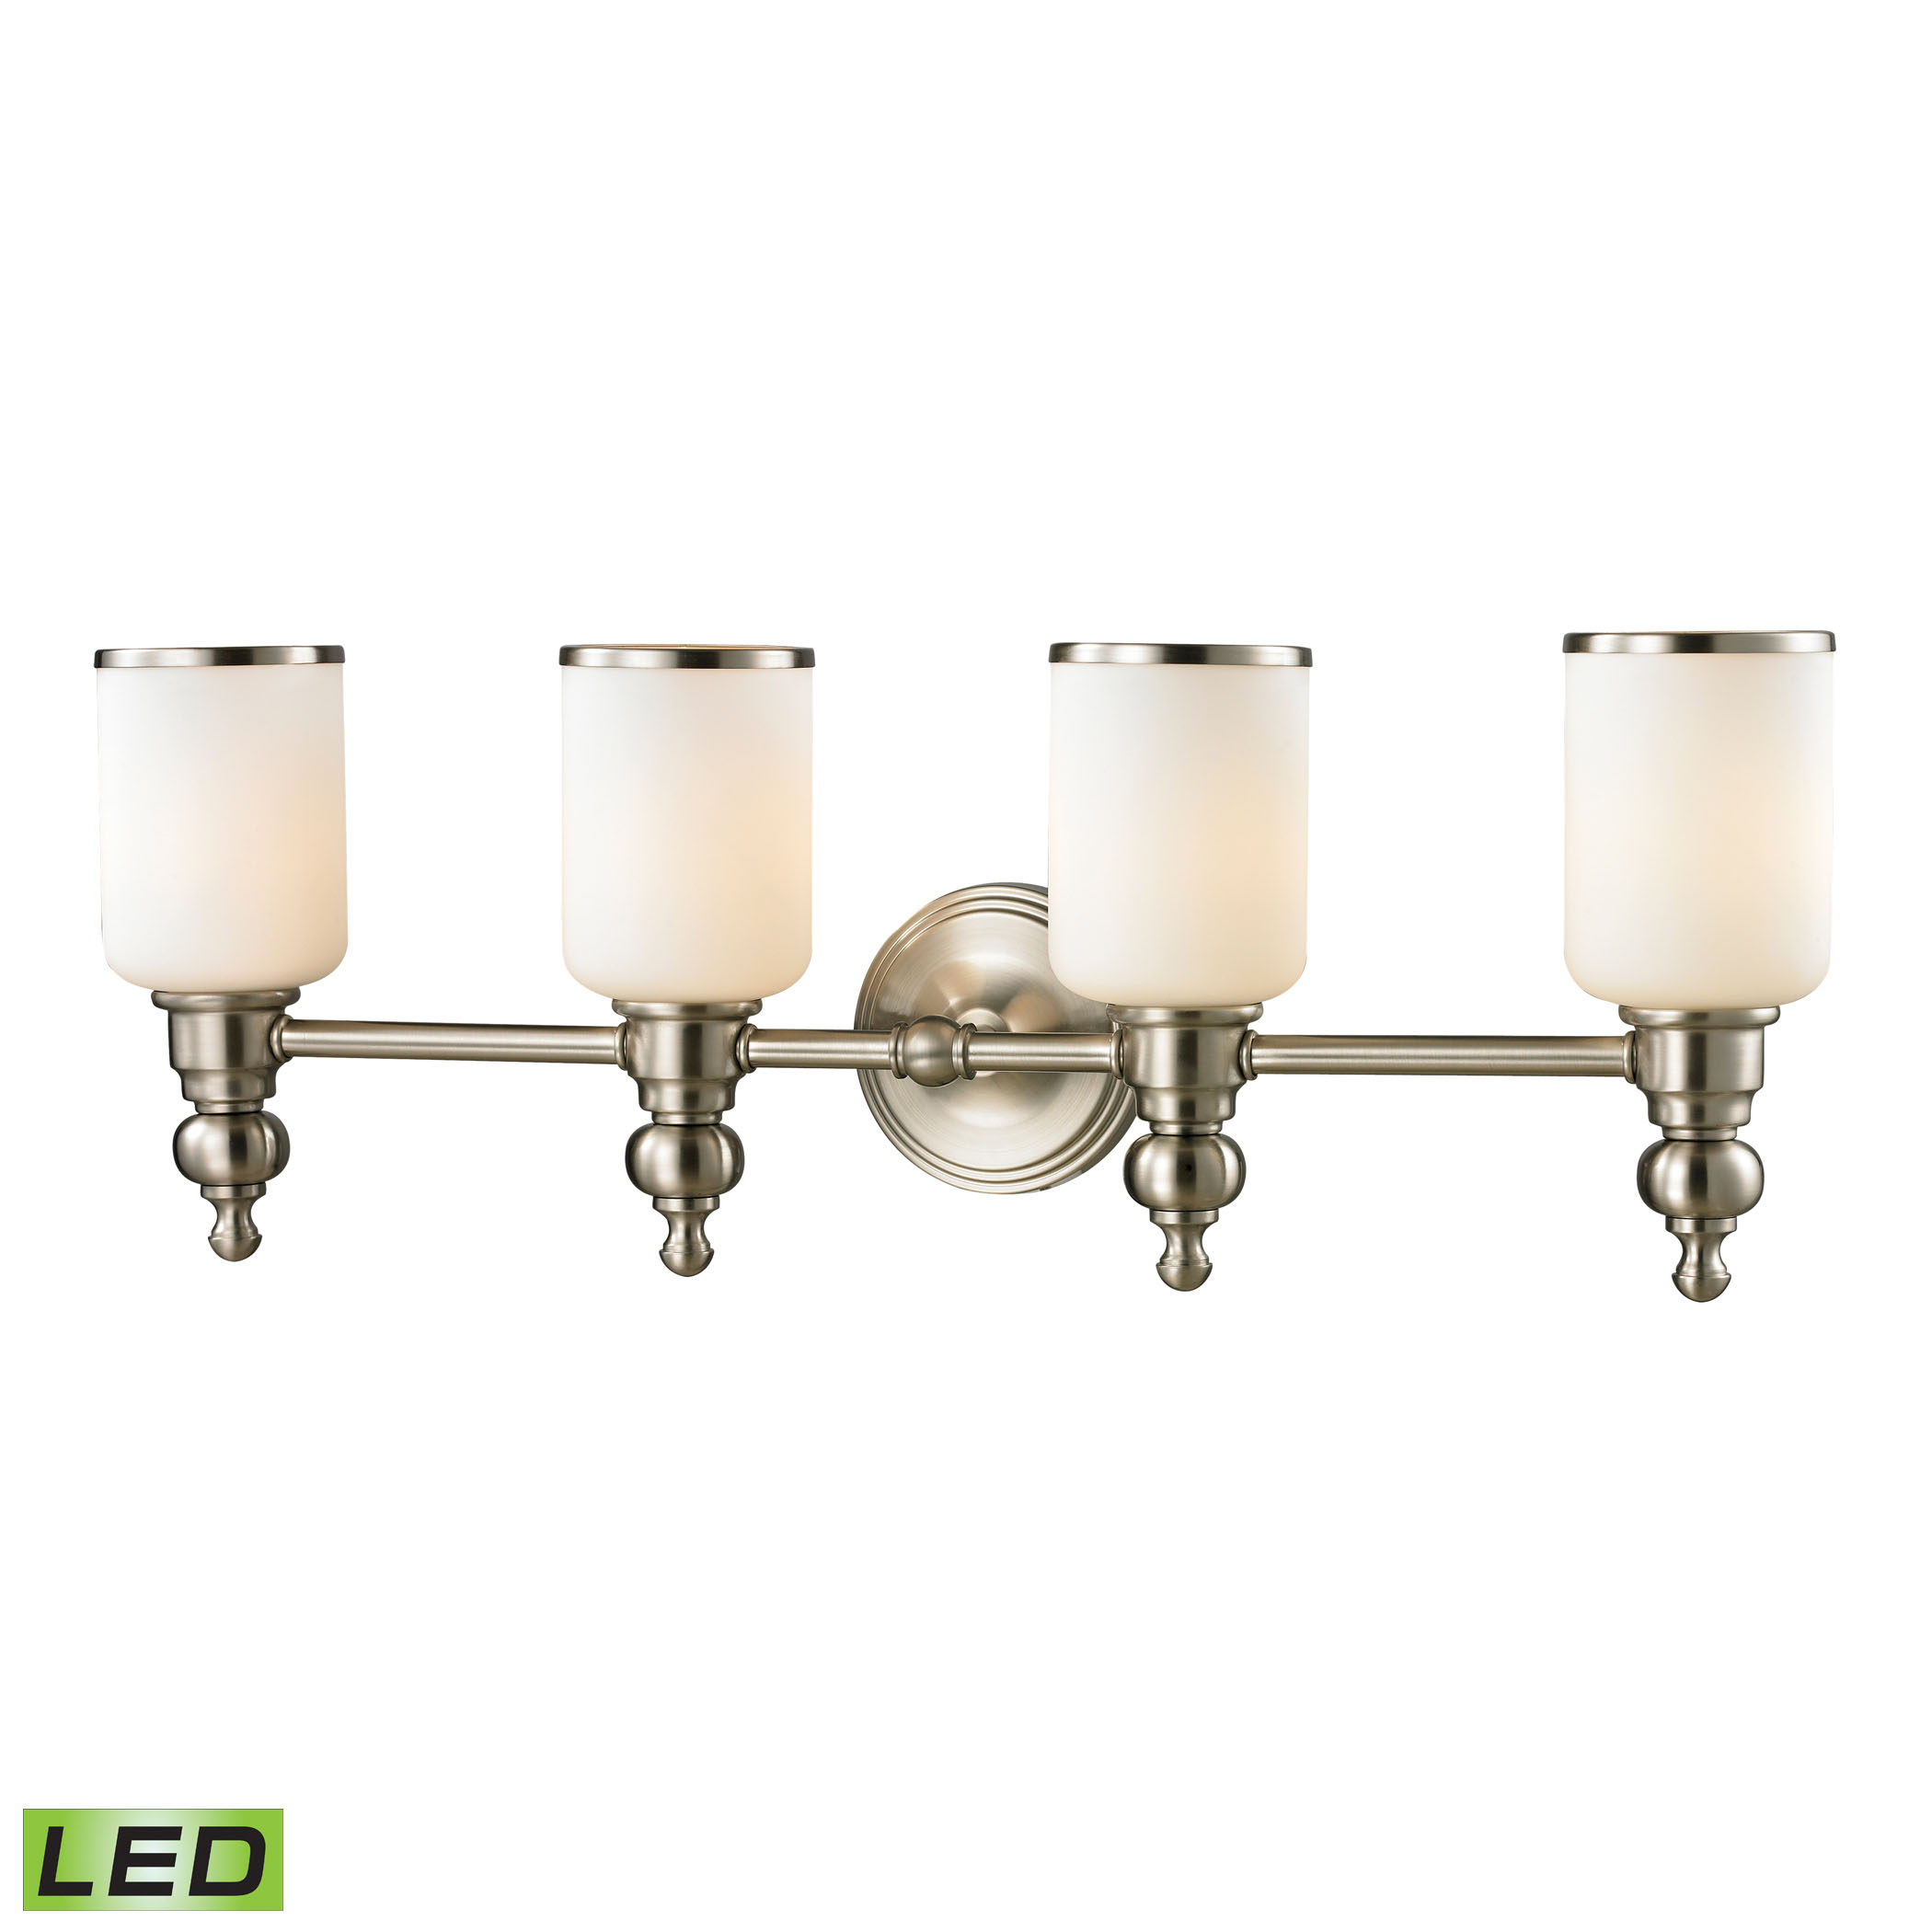 Bristol Collection 4 Light Bath in Brushed Nickel - LED, 800 Lumens (3200 Lumens Total) with Full Sc